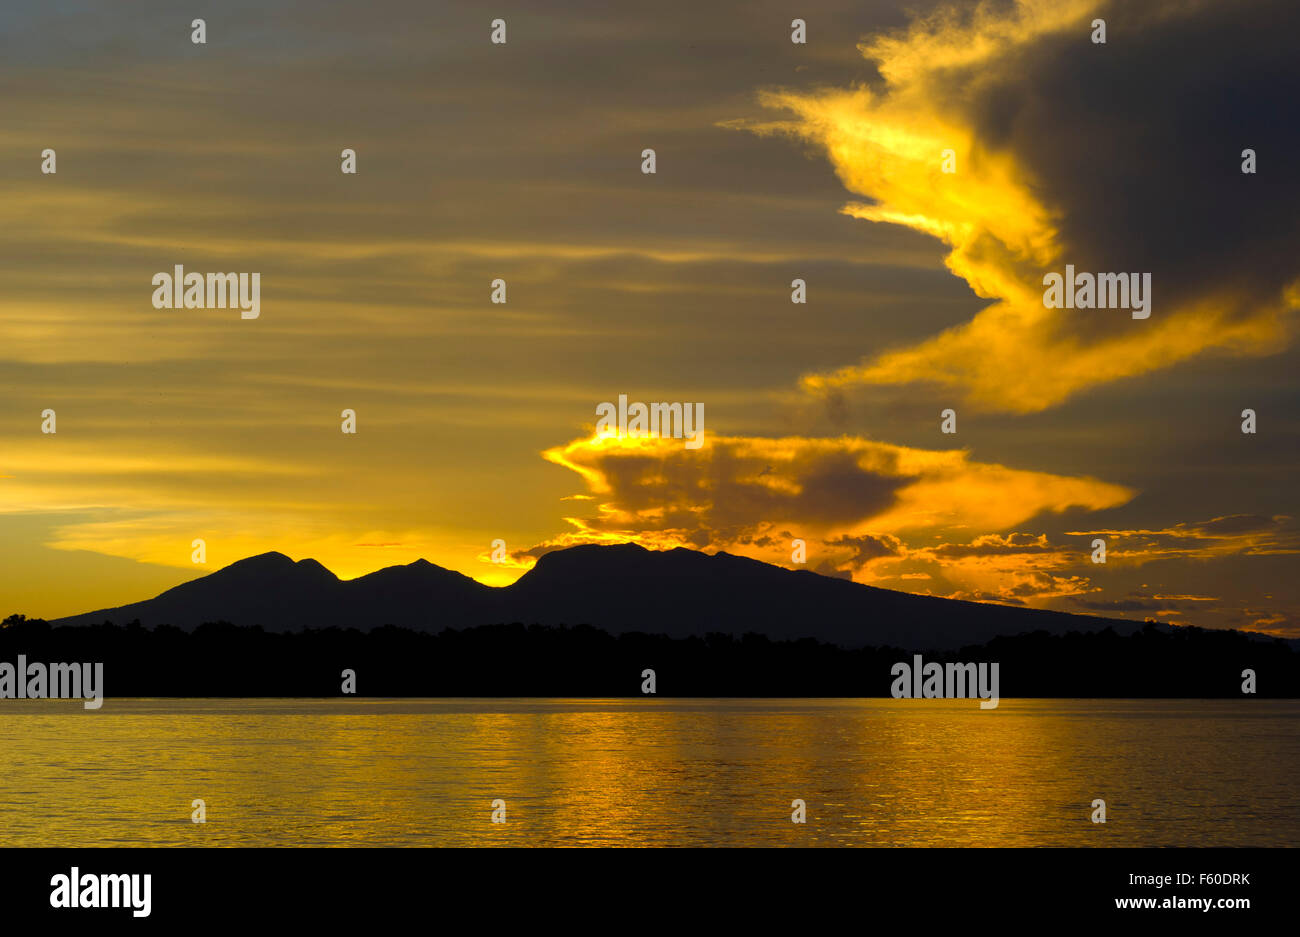 Sunset in the Solomon Islands - Stock Image